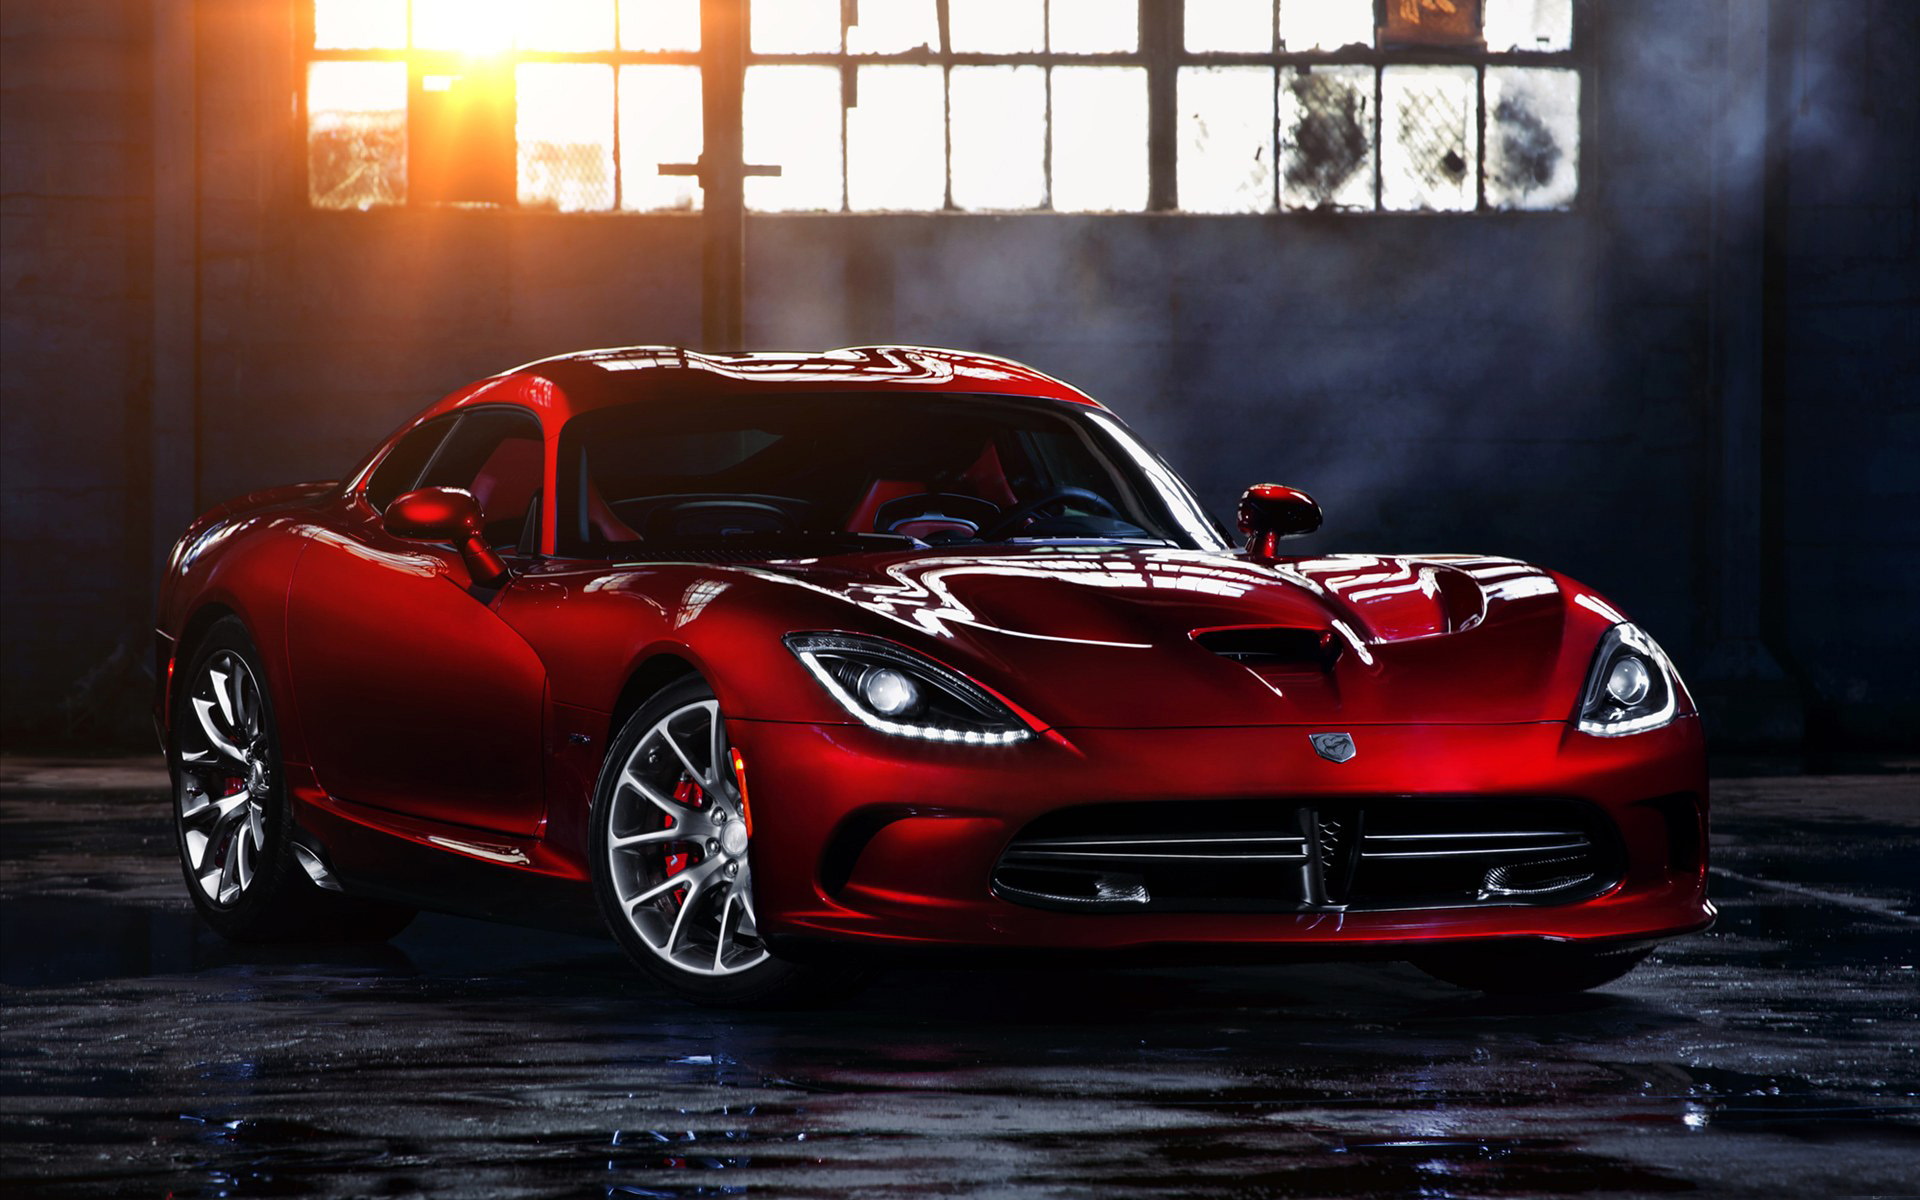 2013 Dodge SRT Viper 892.58 Kb